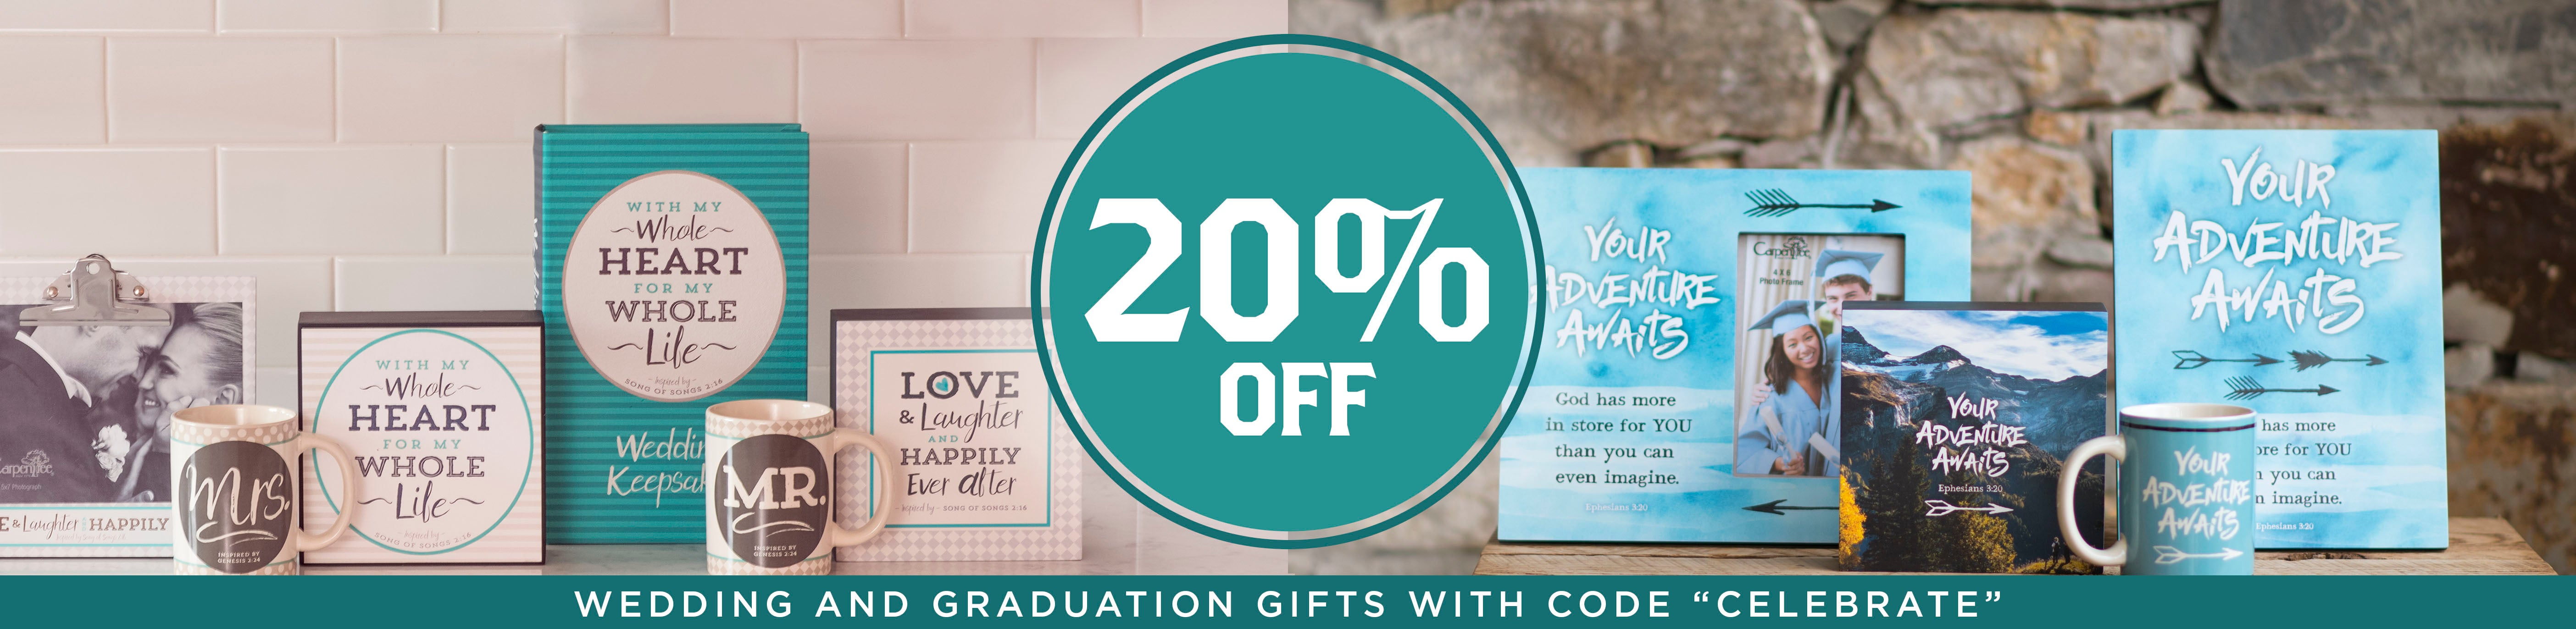 20 % off Graduation and Wedding Gifts